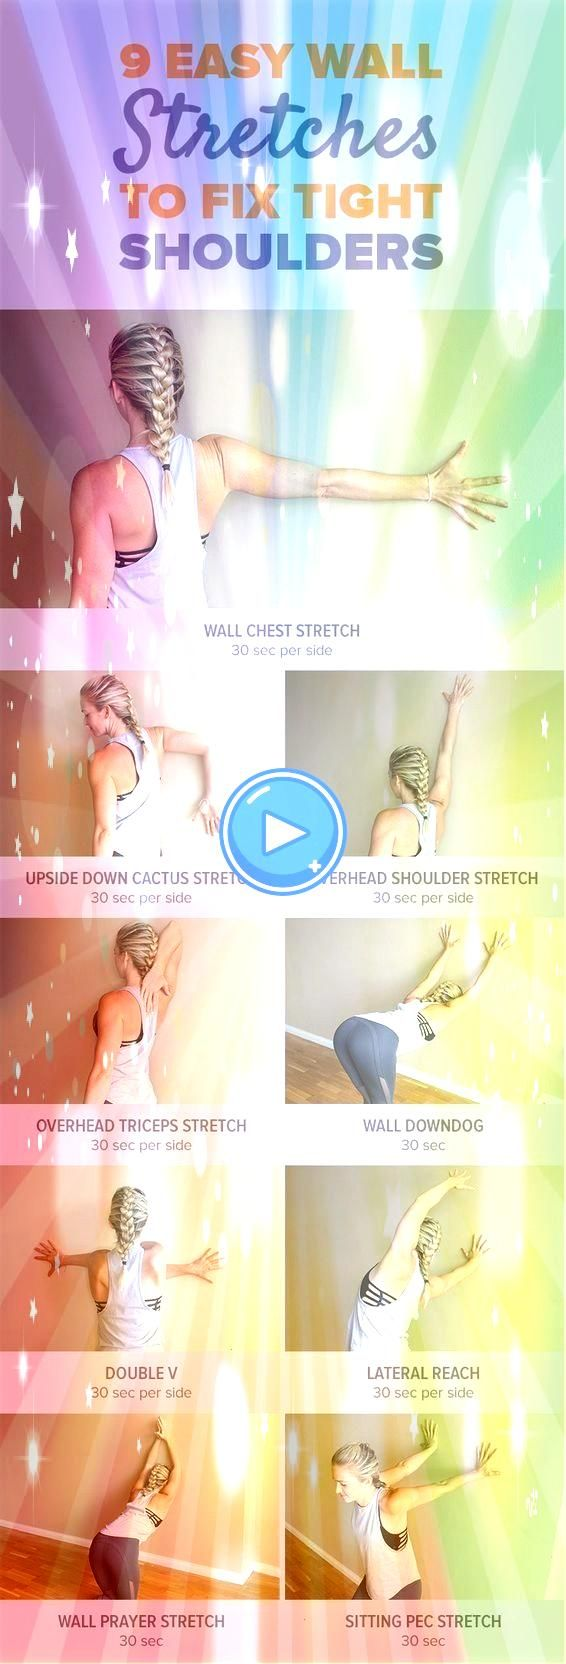 Effective And Easy Wall Stretches to Fix Tight Shoulders  Health and Fitnes  Workout 9 Effective And Easy Wall Stretches to Fix Tight Shoulders  Health and Fitnes  Workou...